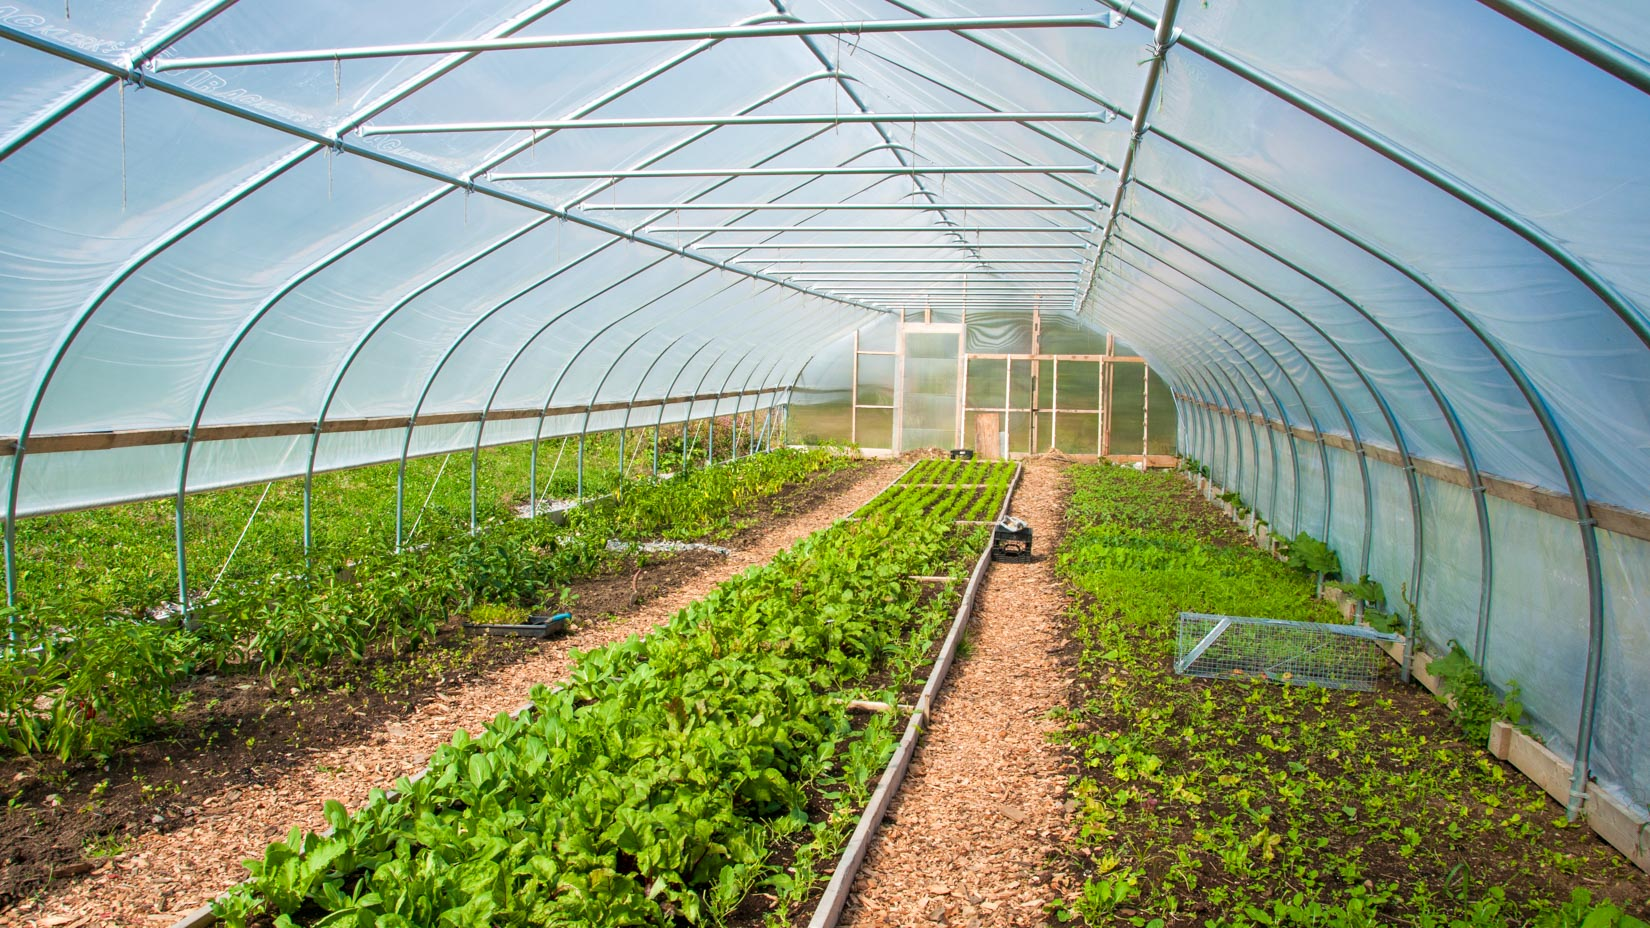 A high tunnel for growing vegetables.